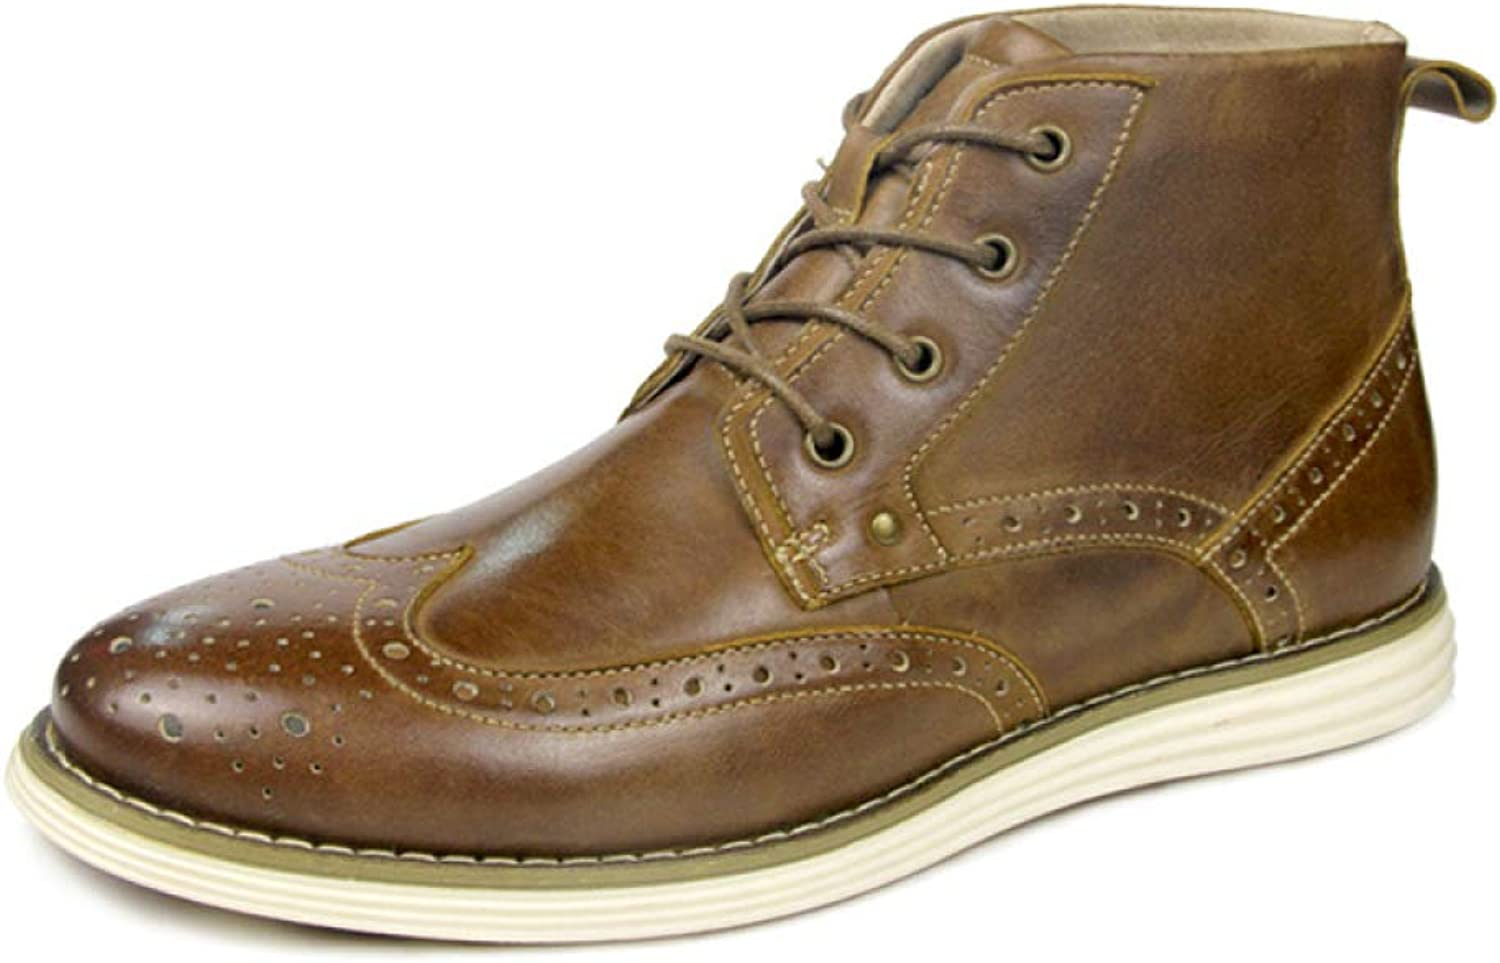 56da5522c73 MERRYHE Men's Lace Up Brogue Martin Boots Genuine Leather Work Party ...